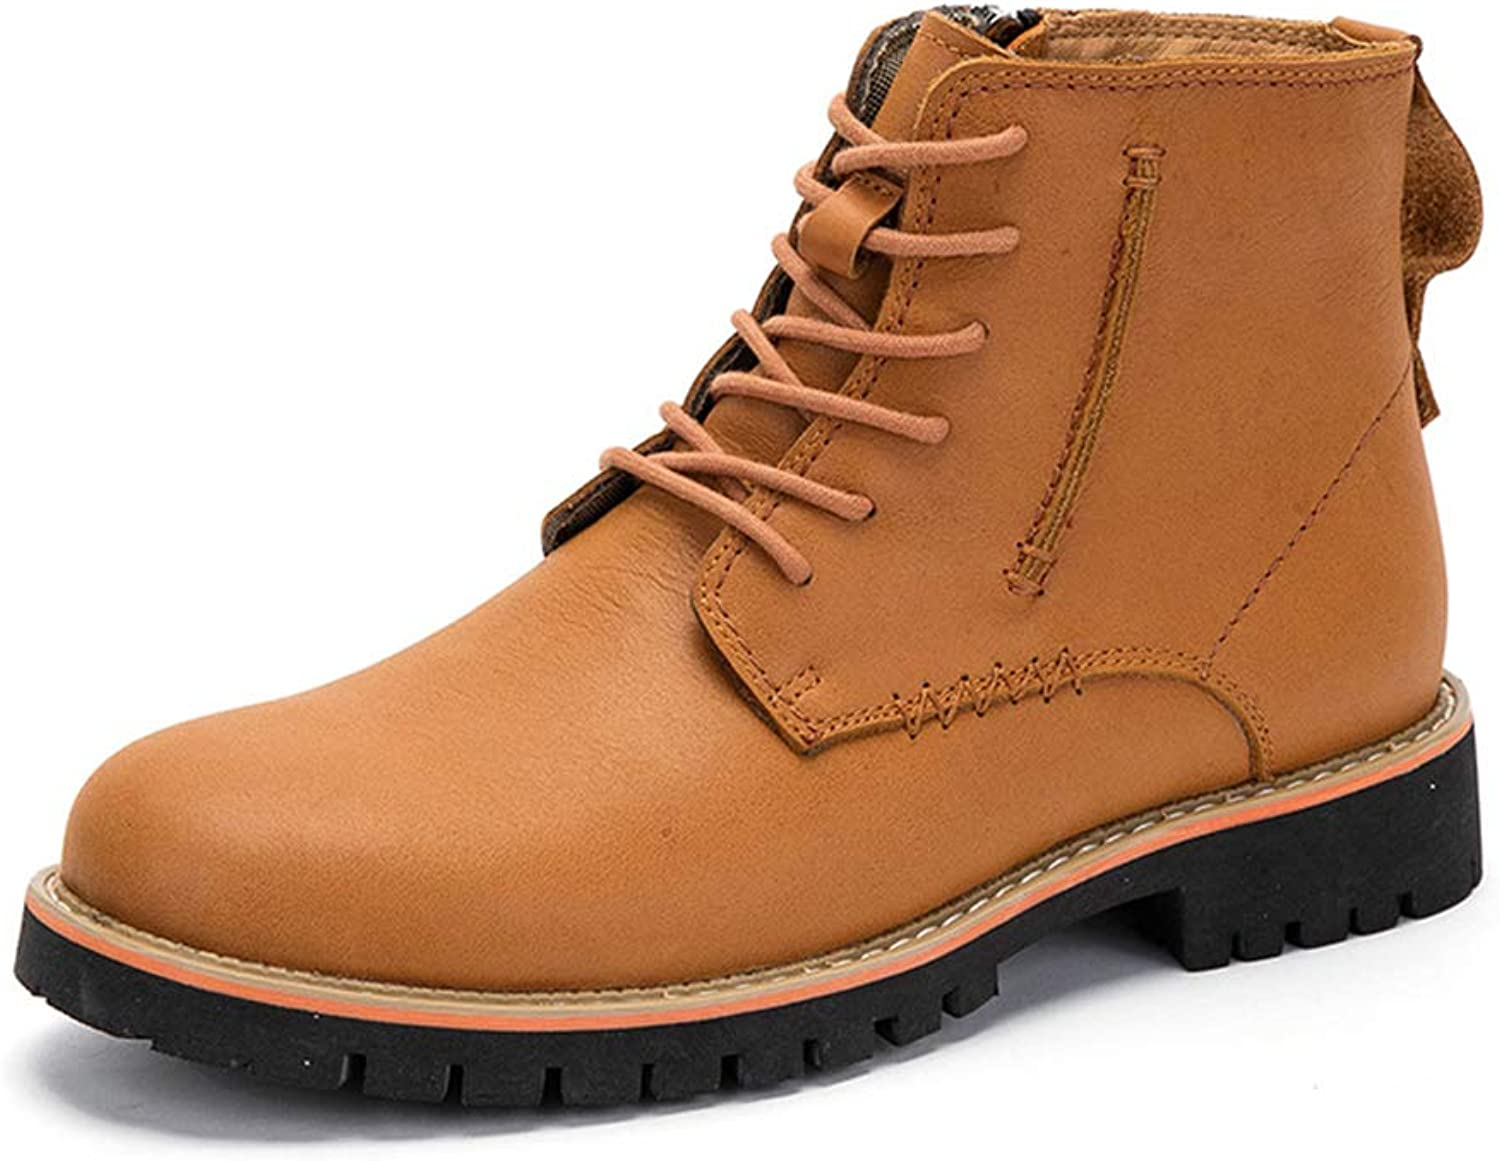 Mens Leather Martin Boots Lace-up Work Satety Boots Autumn Casual Outdoor Footwear Non-Slip Short Ankle Boots